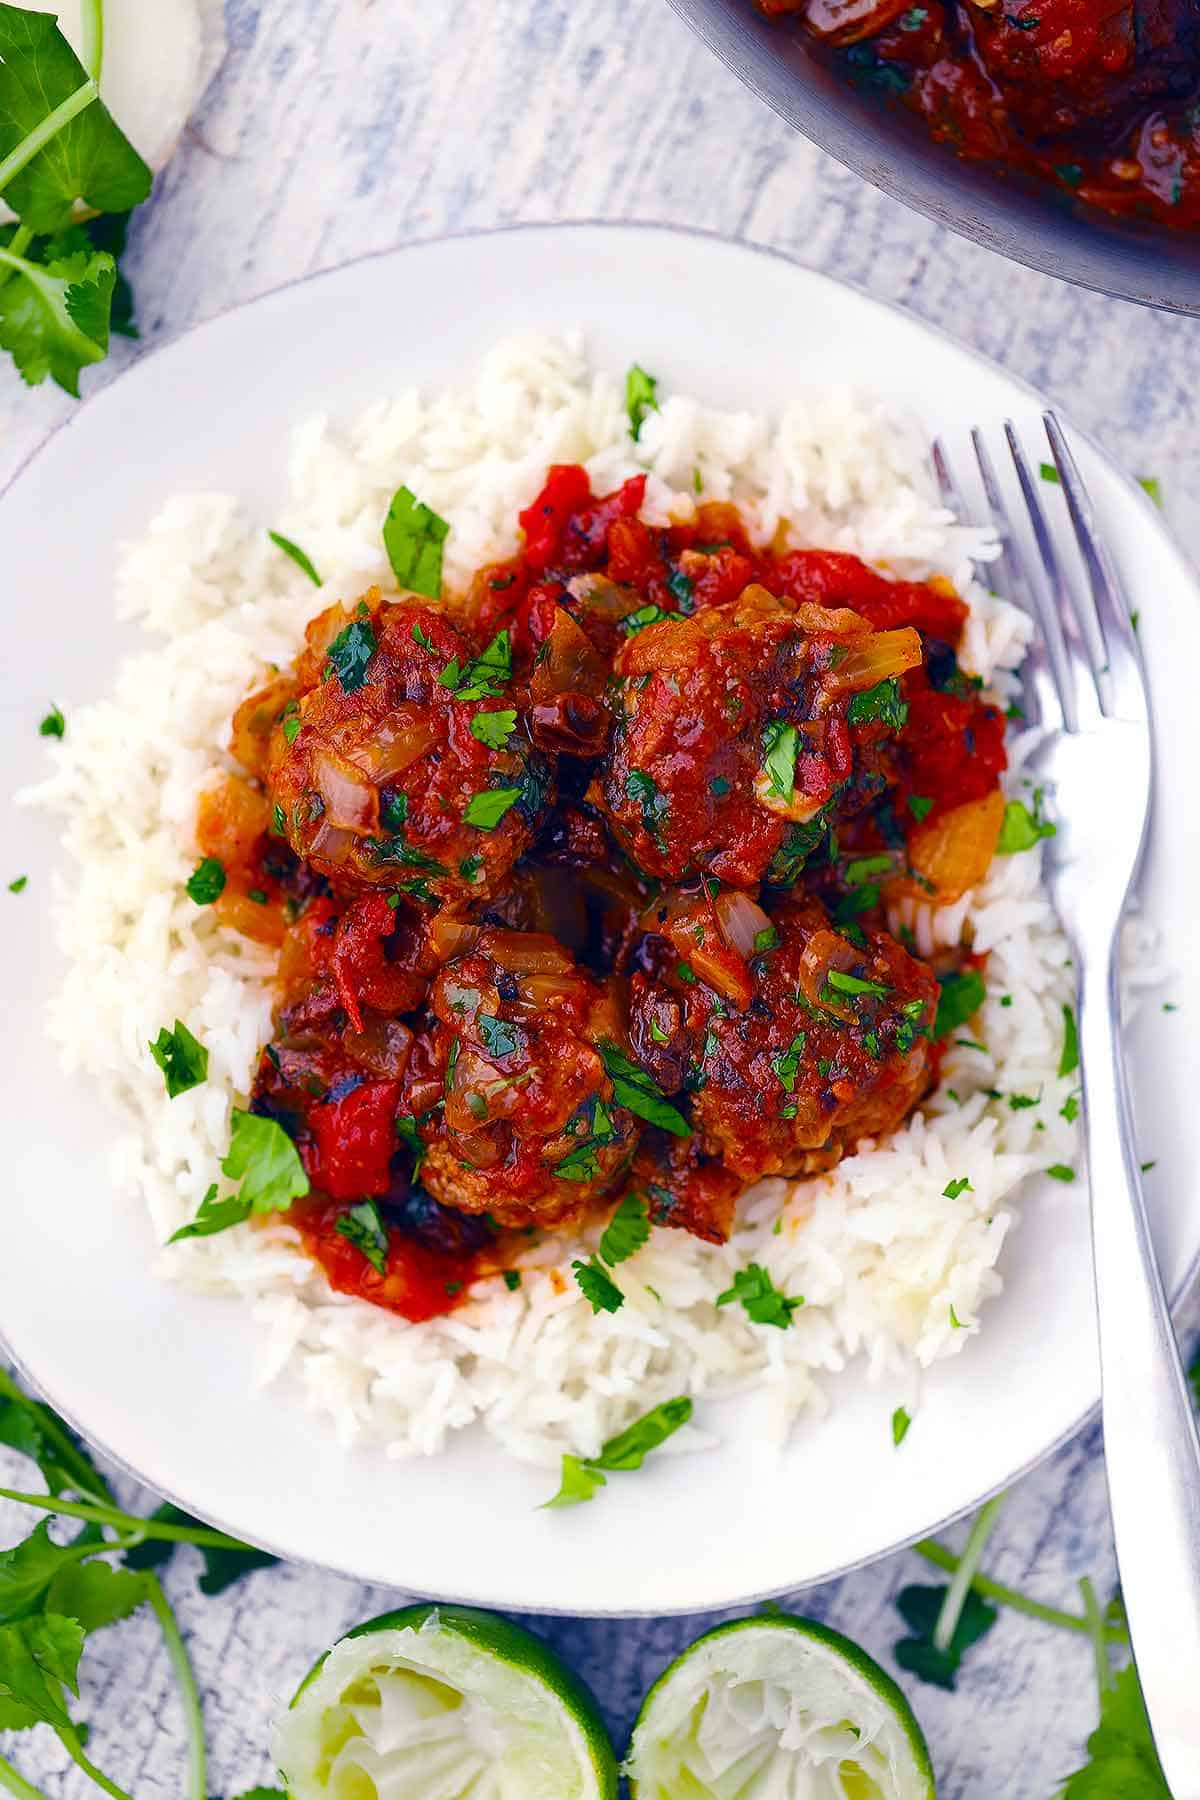 A white plate with lamb meatballs over rice and a fork.